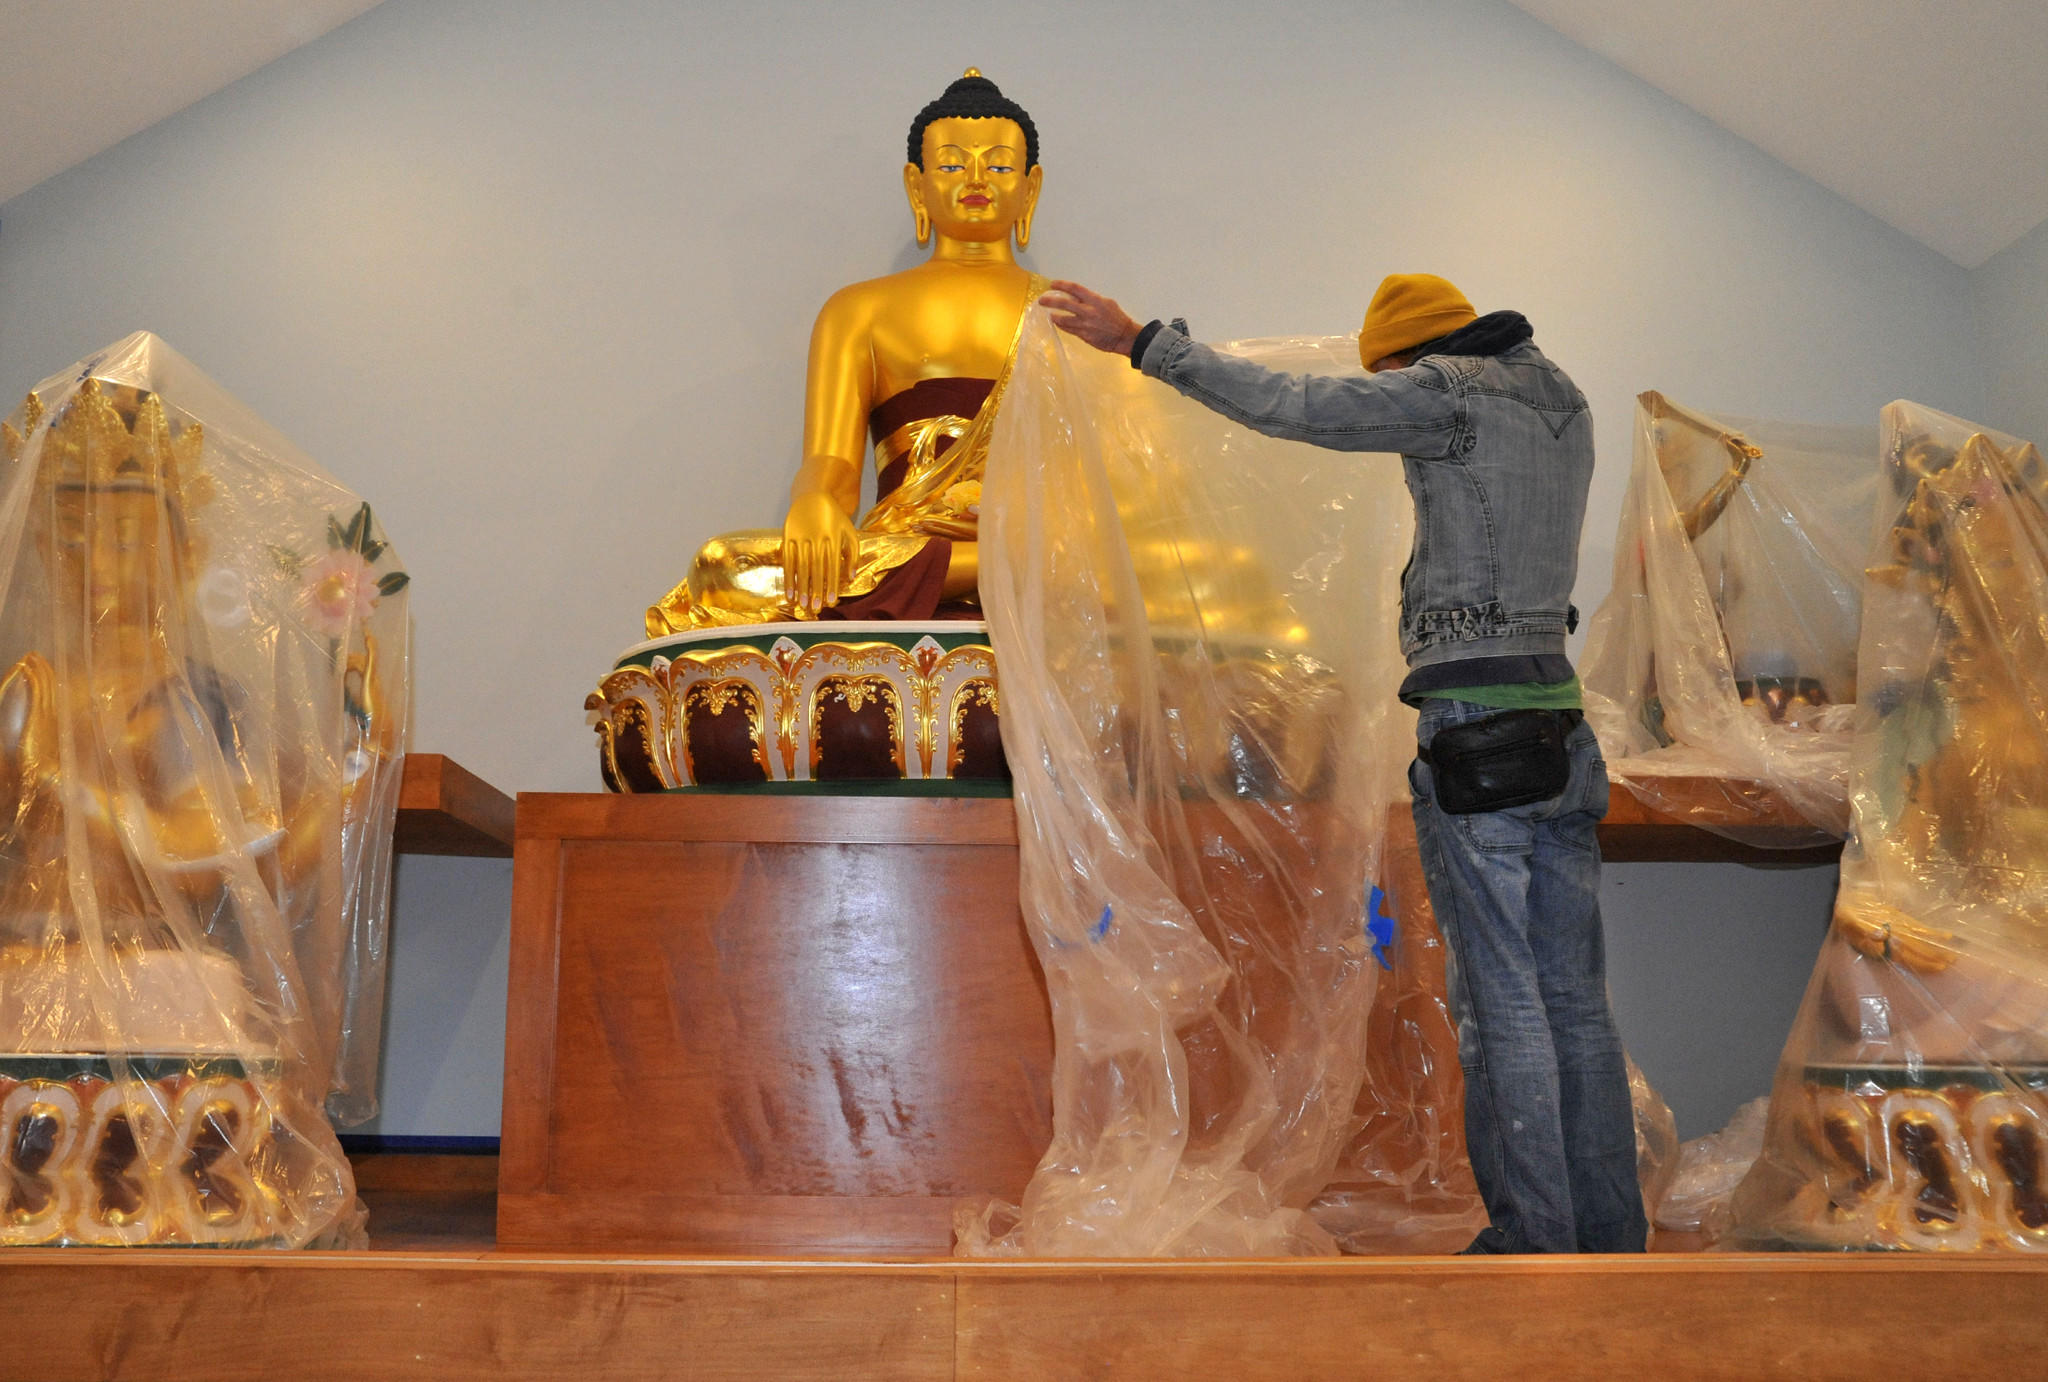 baltimore buddhist single men Bisexual men groups  buddhist passions  specifically for buddhist singles and those  you can use buddhist passions solely as a buddhist focused.